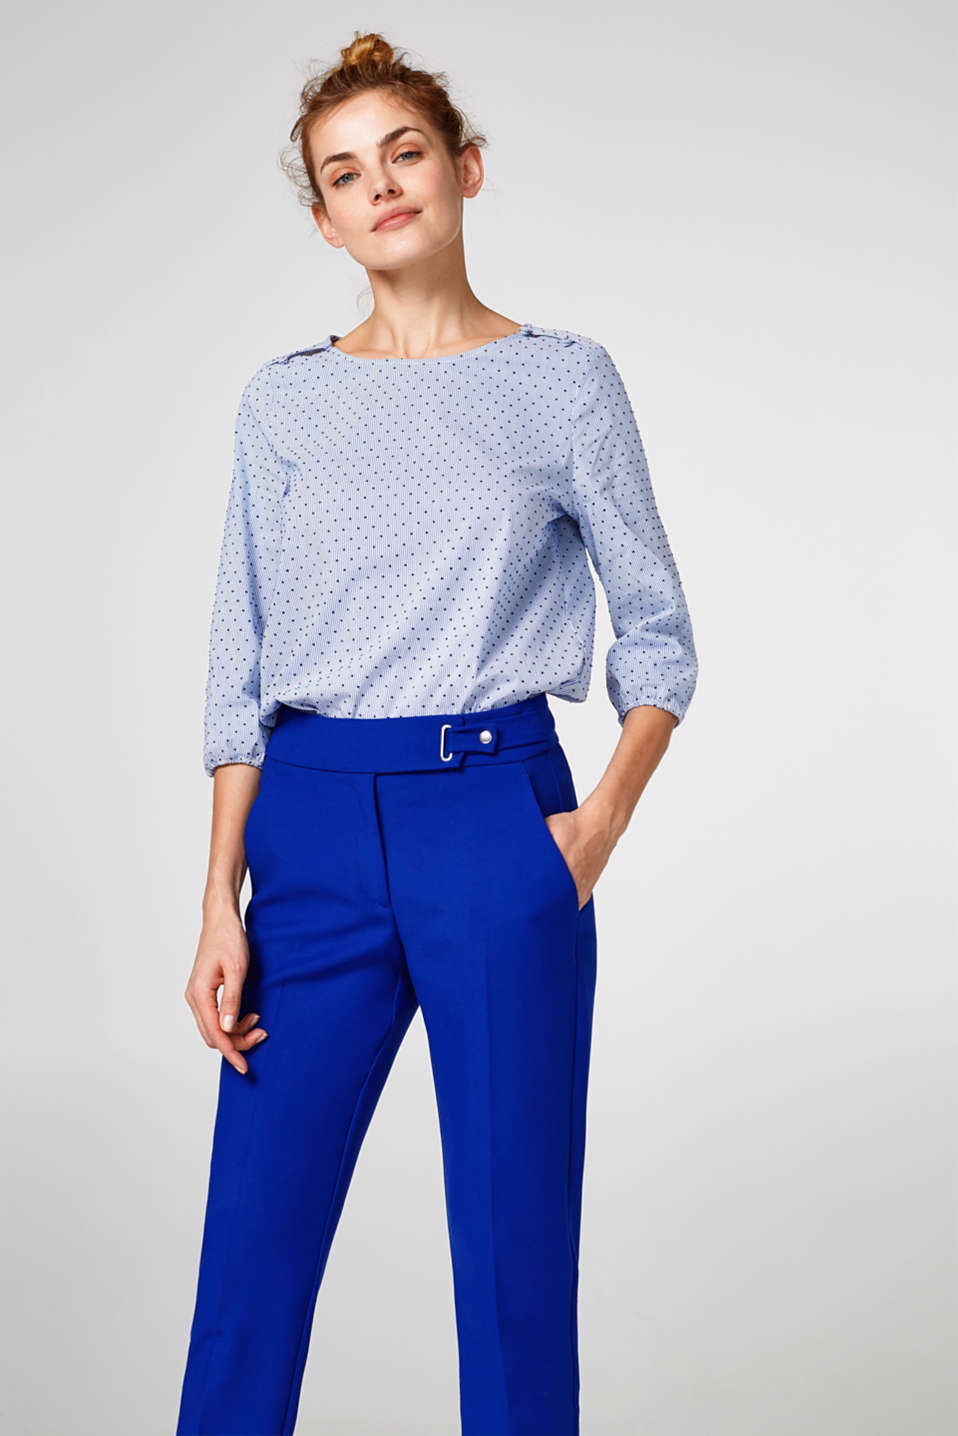 Esprit - Woven blouse with a velvety polka dot print